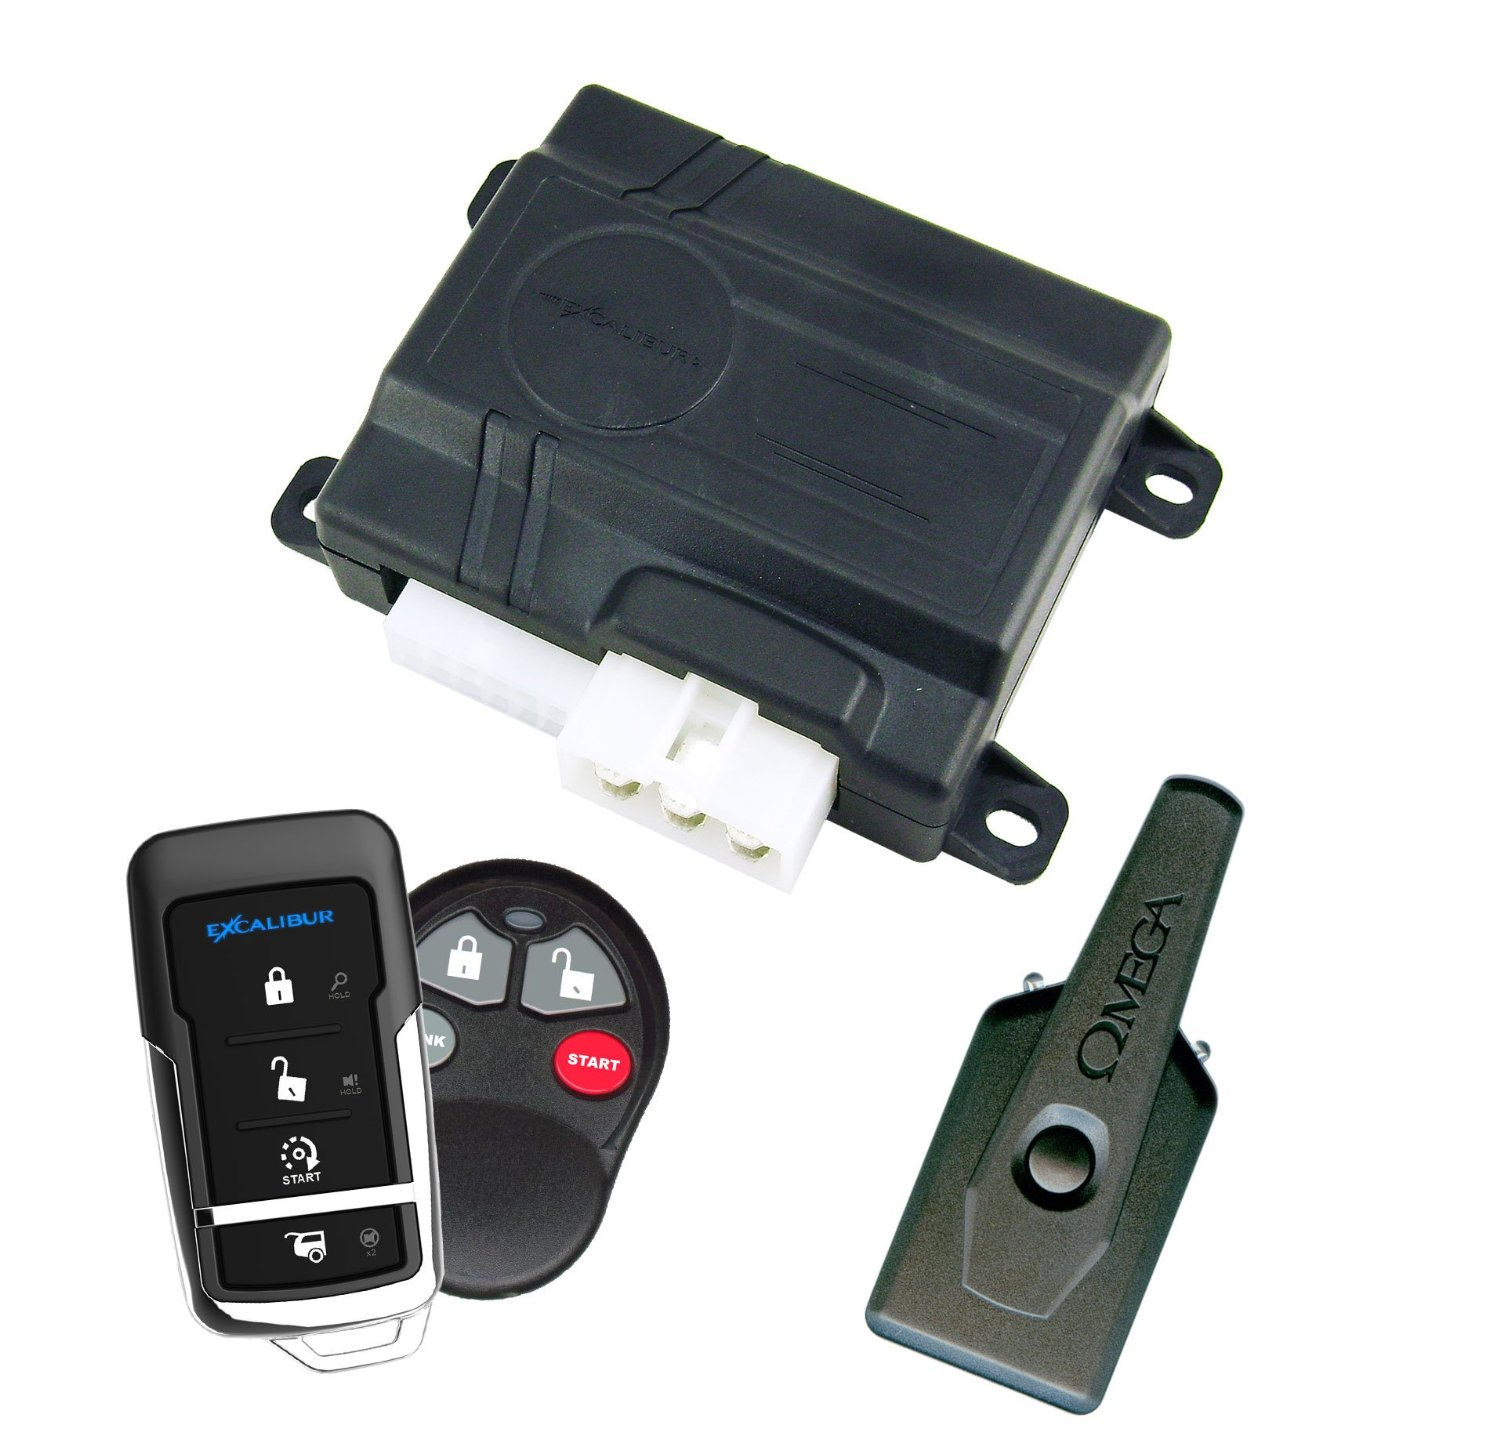 OM-Omega Excalibur Keyless Entry Remote Start